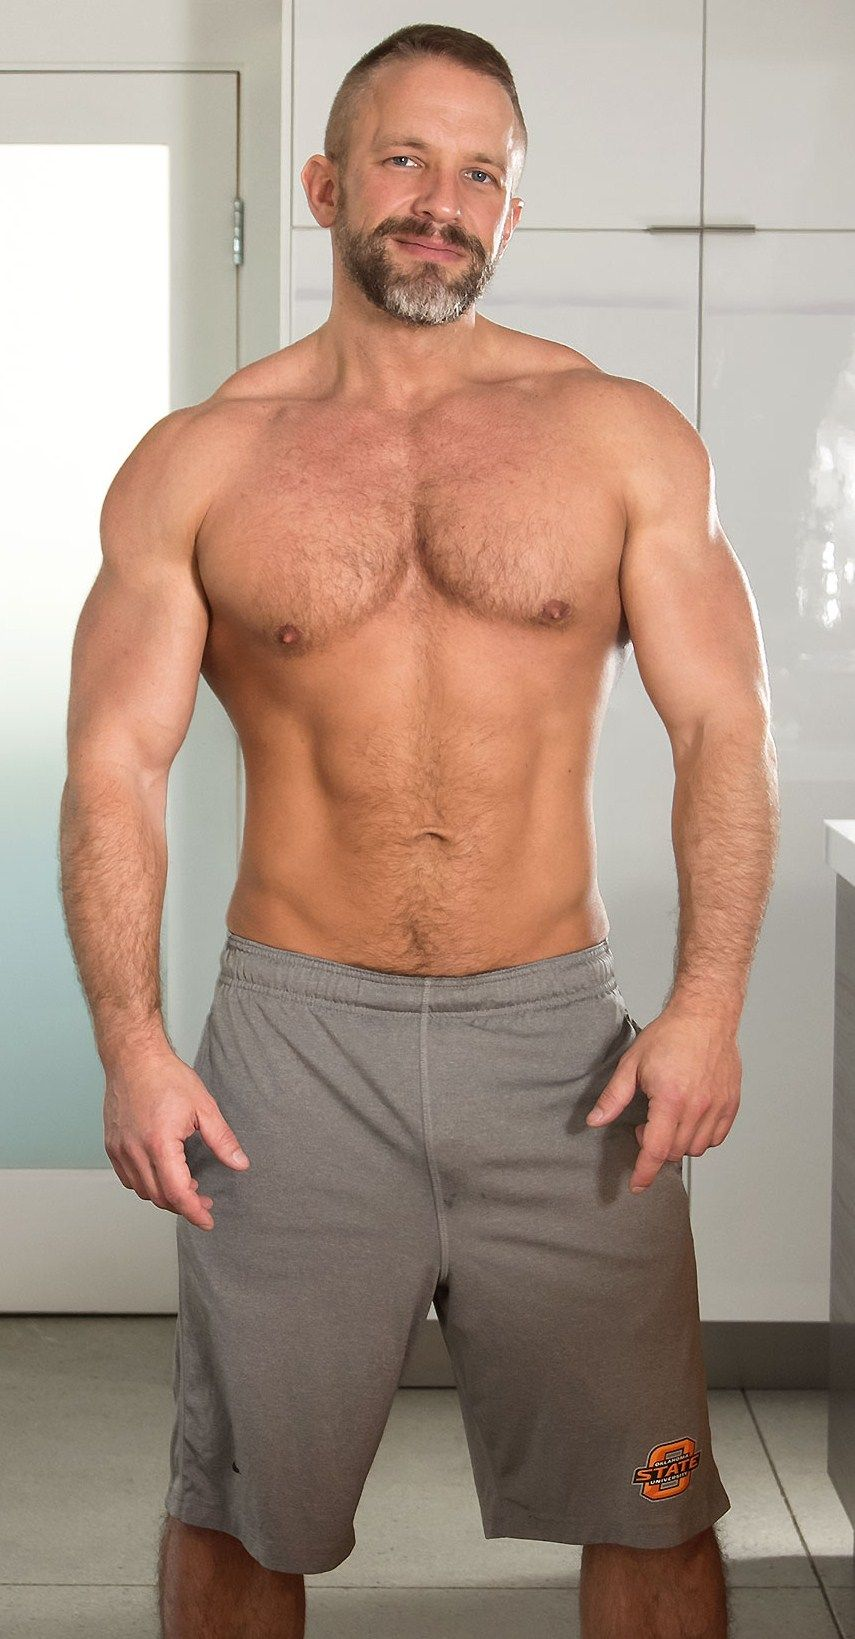 Beautiful gay man muscle realmen